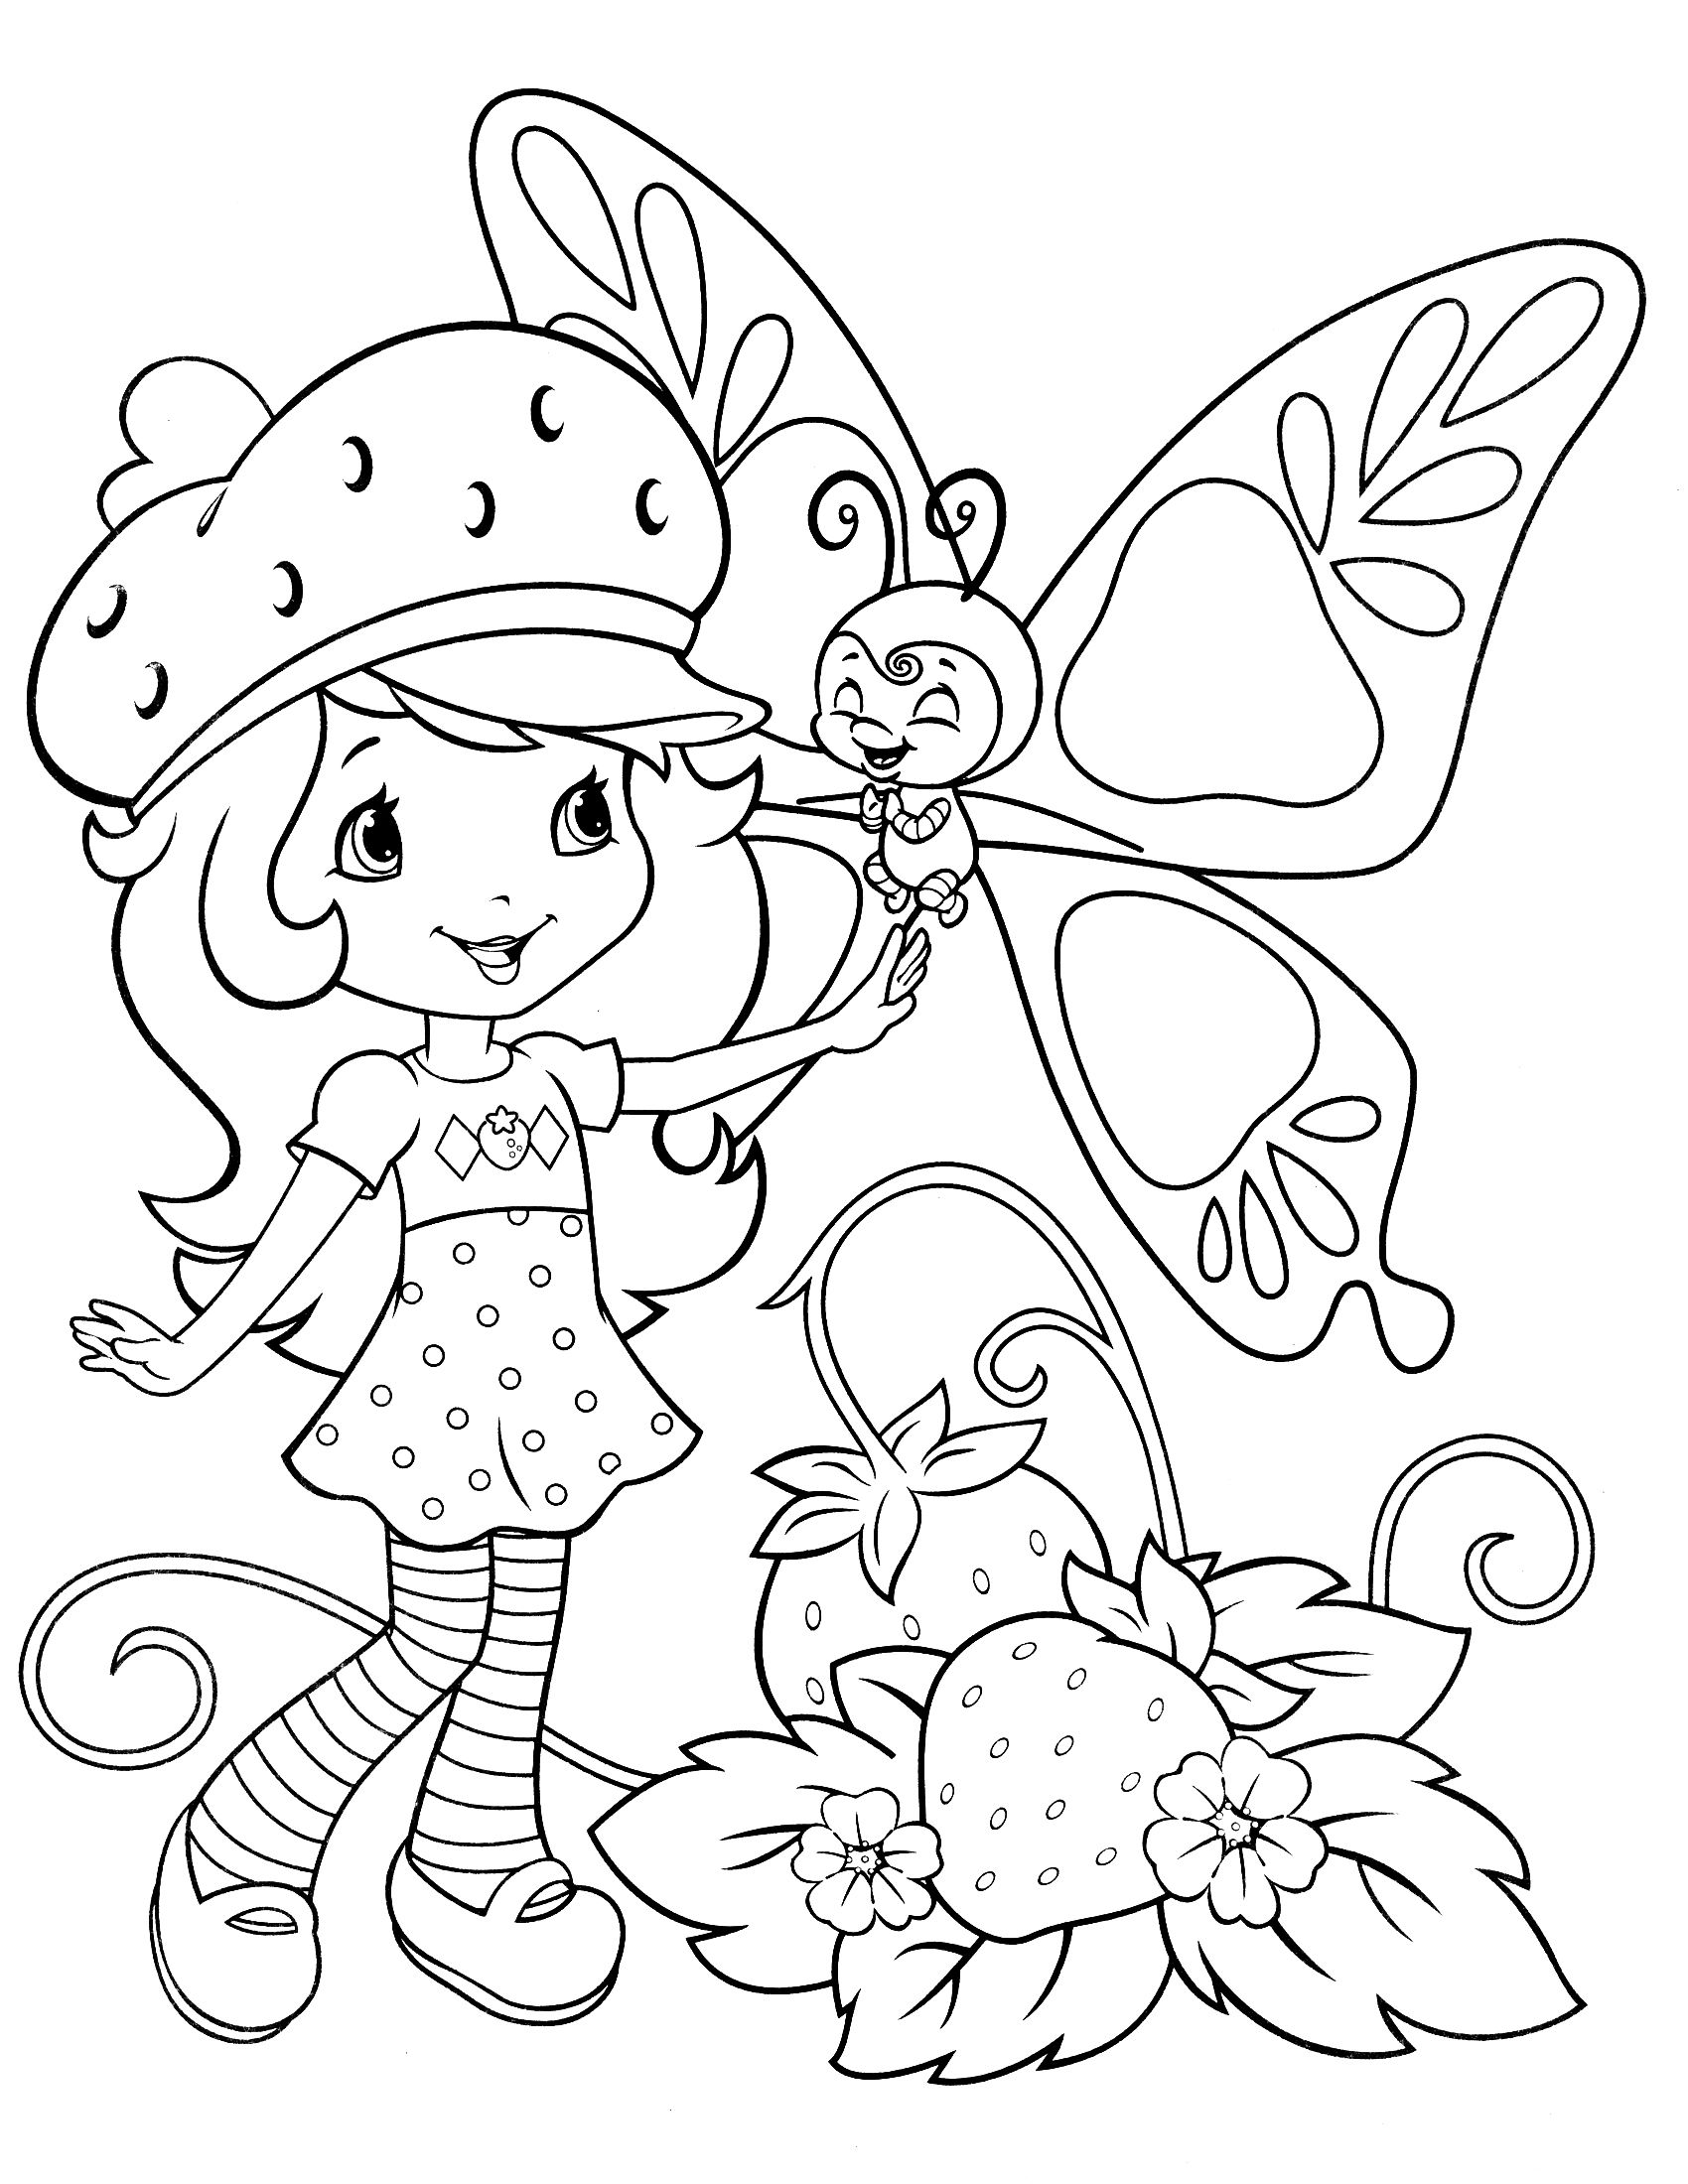 Top 20 free printable strawberry shortcake coloring pages ...